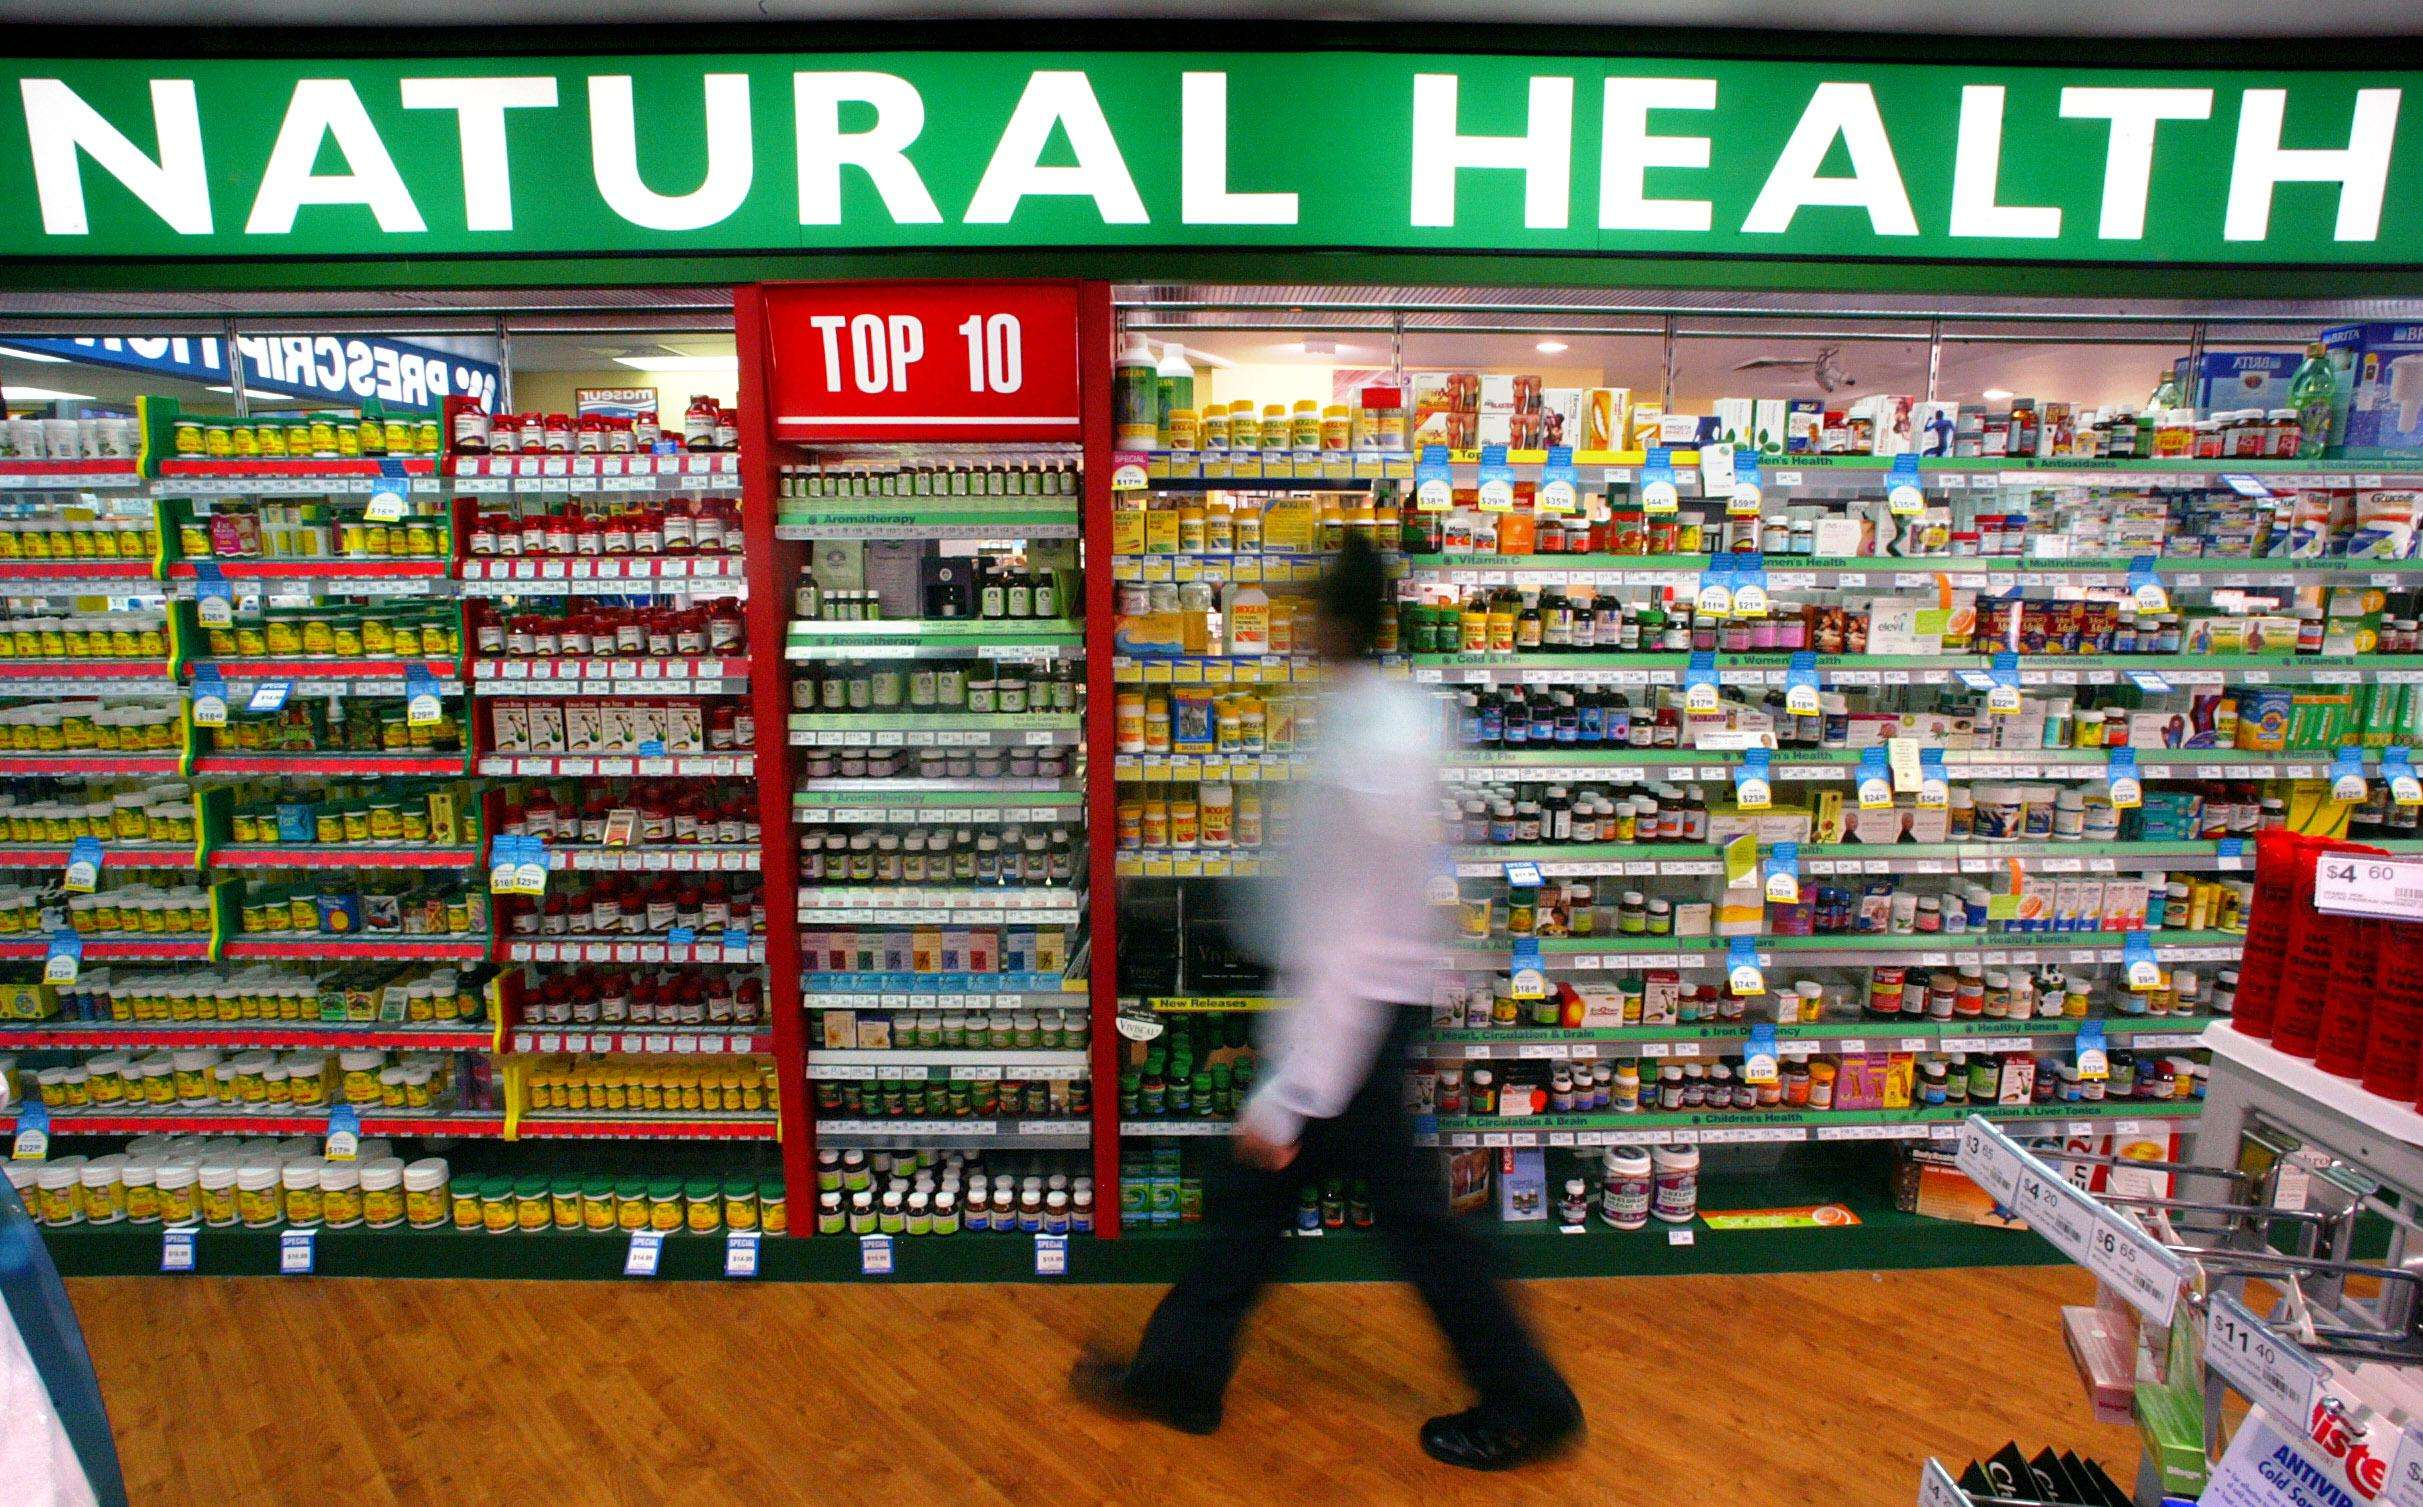 Gst gst rate not fixed for food supplements yet retail news et retail gst rate not fixed for food supplements yet stopboris Choice Image